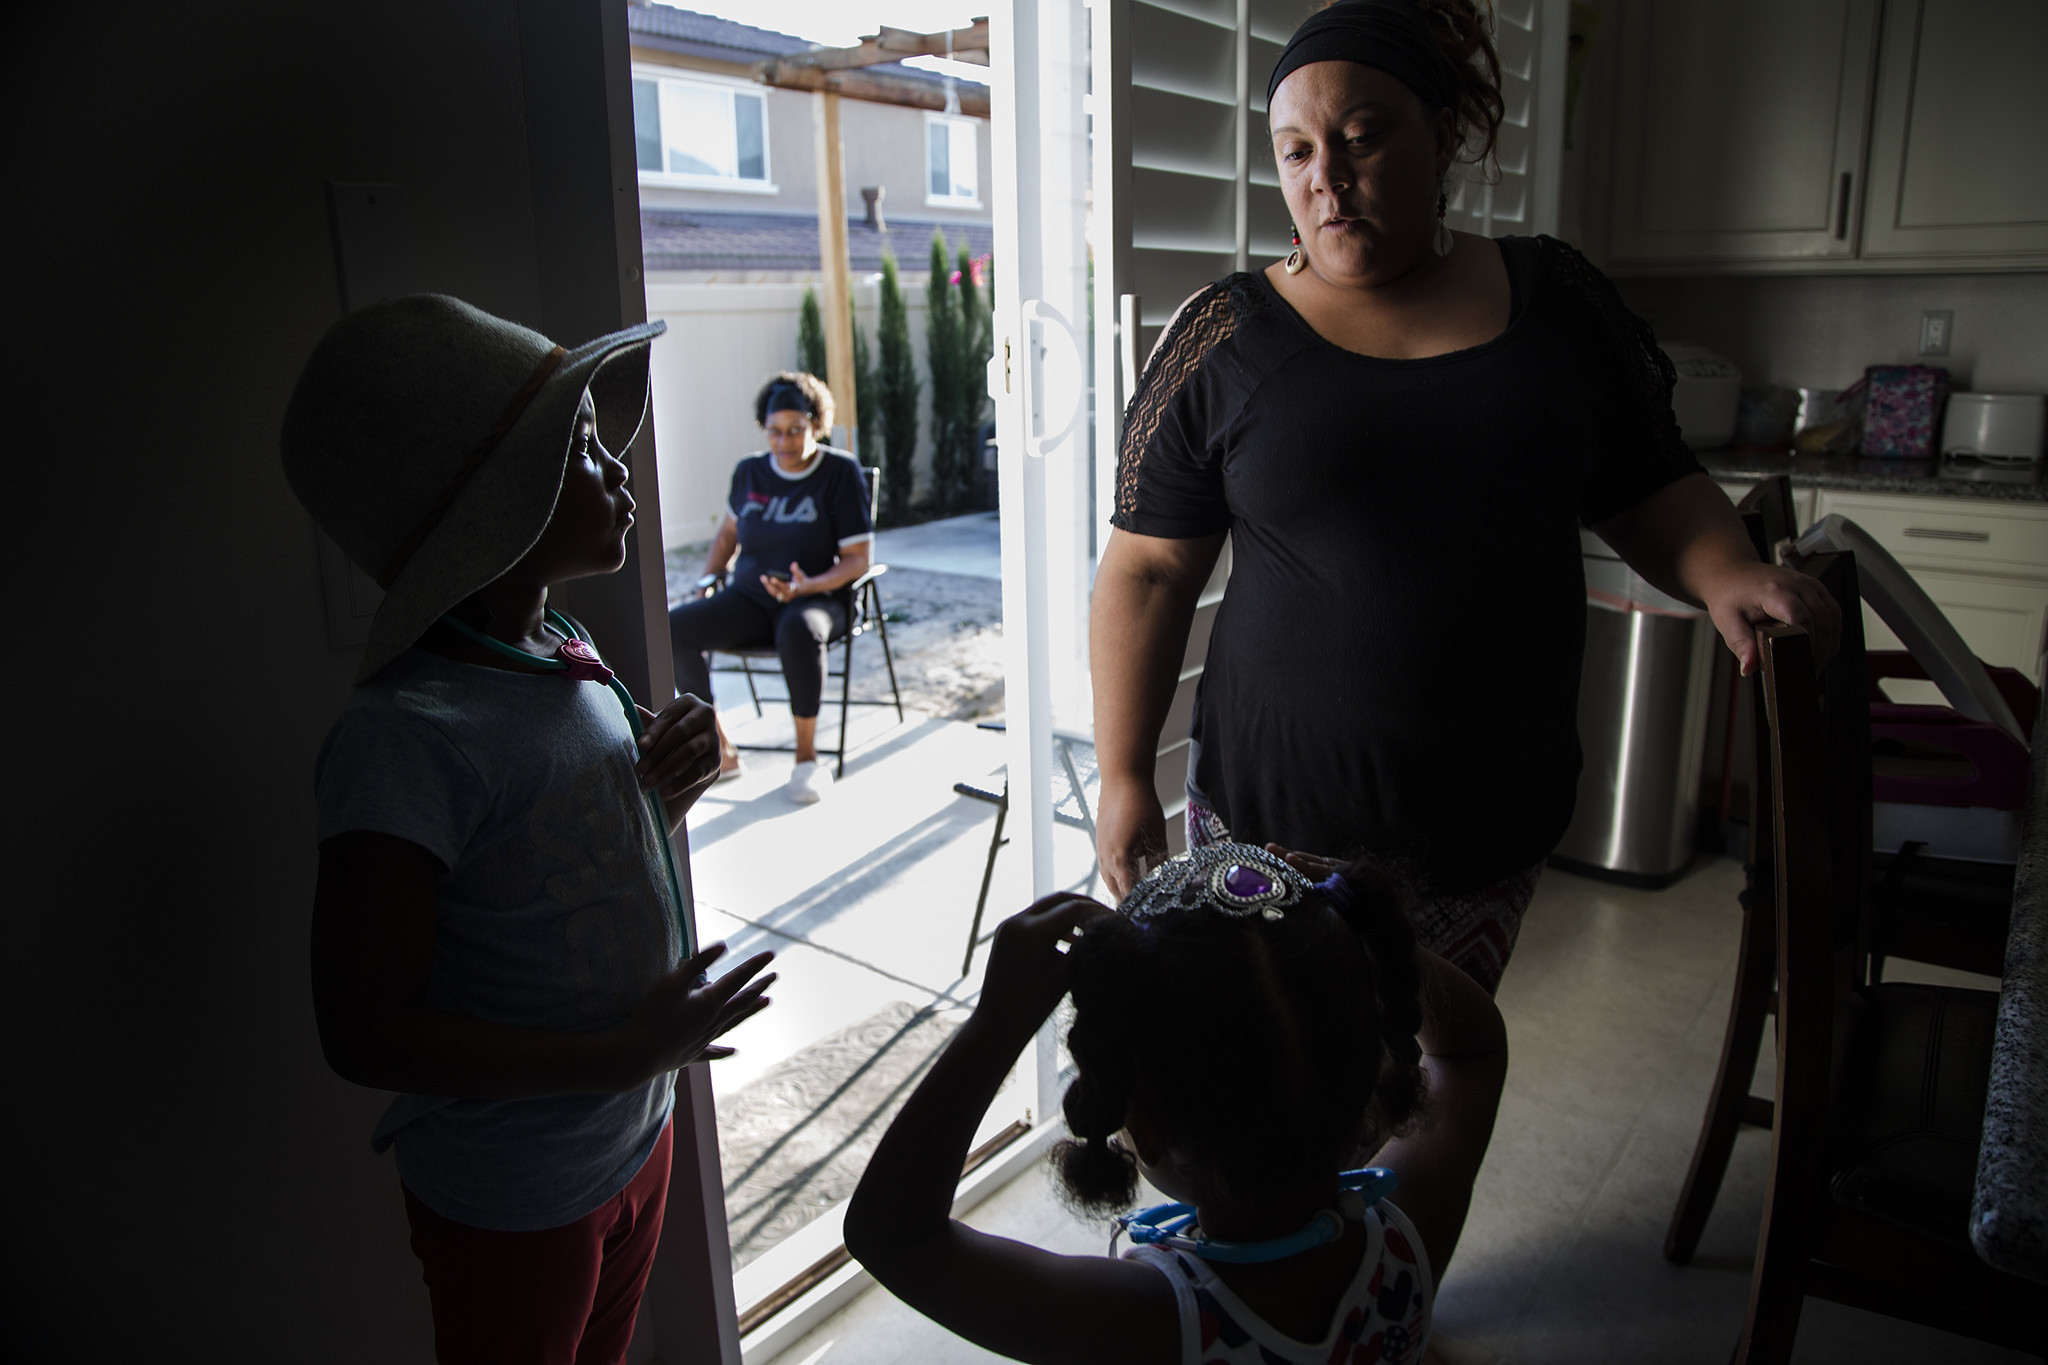 Housing manager Erica Wilson, right, spends time with Leana Wilson, 6, left, and Brooklyn Jackson, 3, before dinner at a transitional home in Eastvale that serves former offenders.